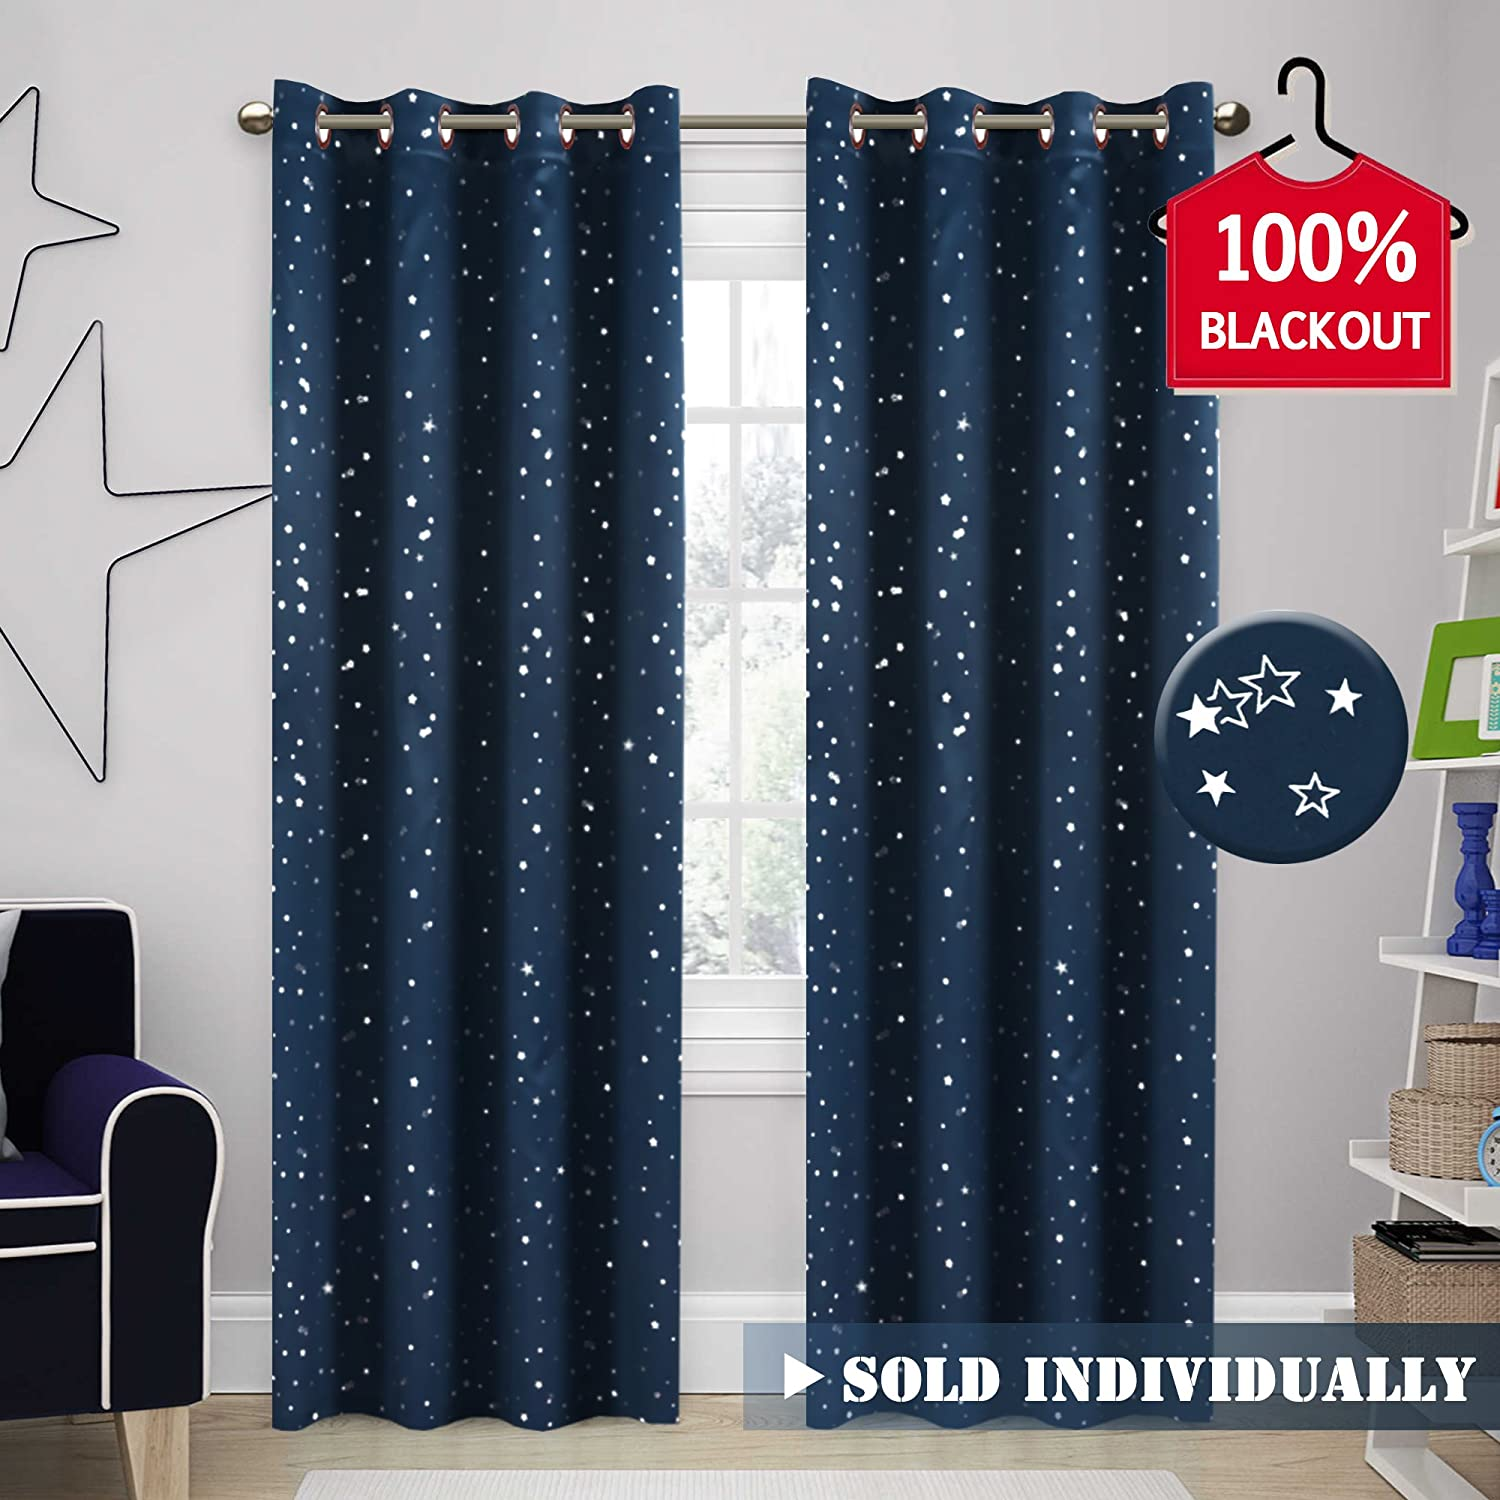 eyelets swag drapes green pelmets sandy fabric door sheer valance royal blackout curtains blue stone curtain design swags itm pleats with